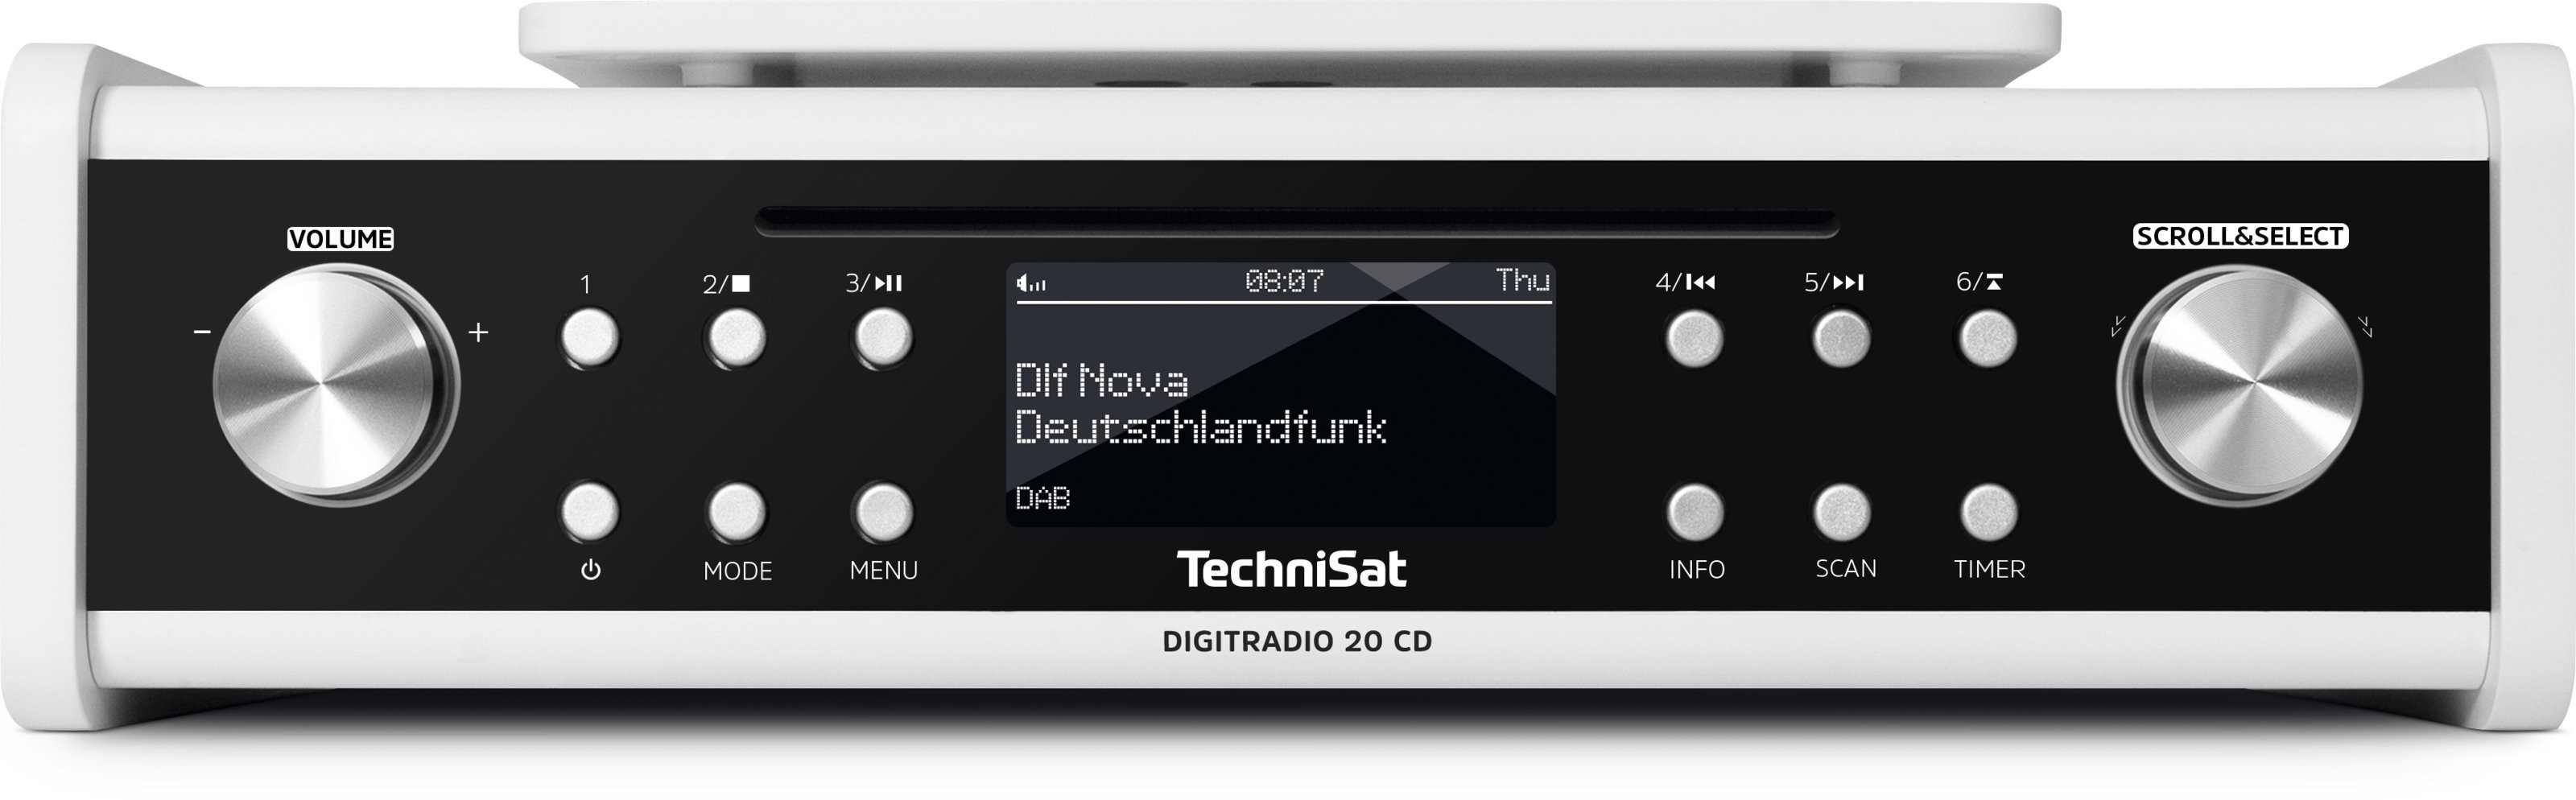 TechniSat DigitRadio 20 CD weiss